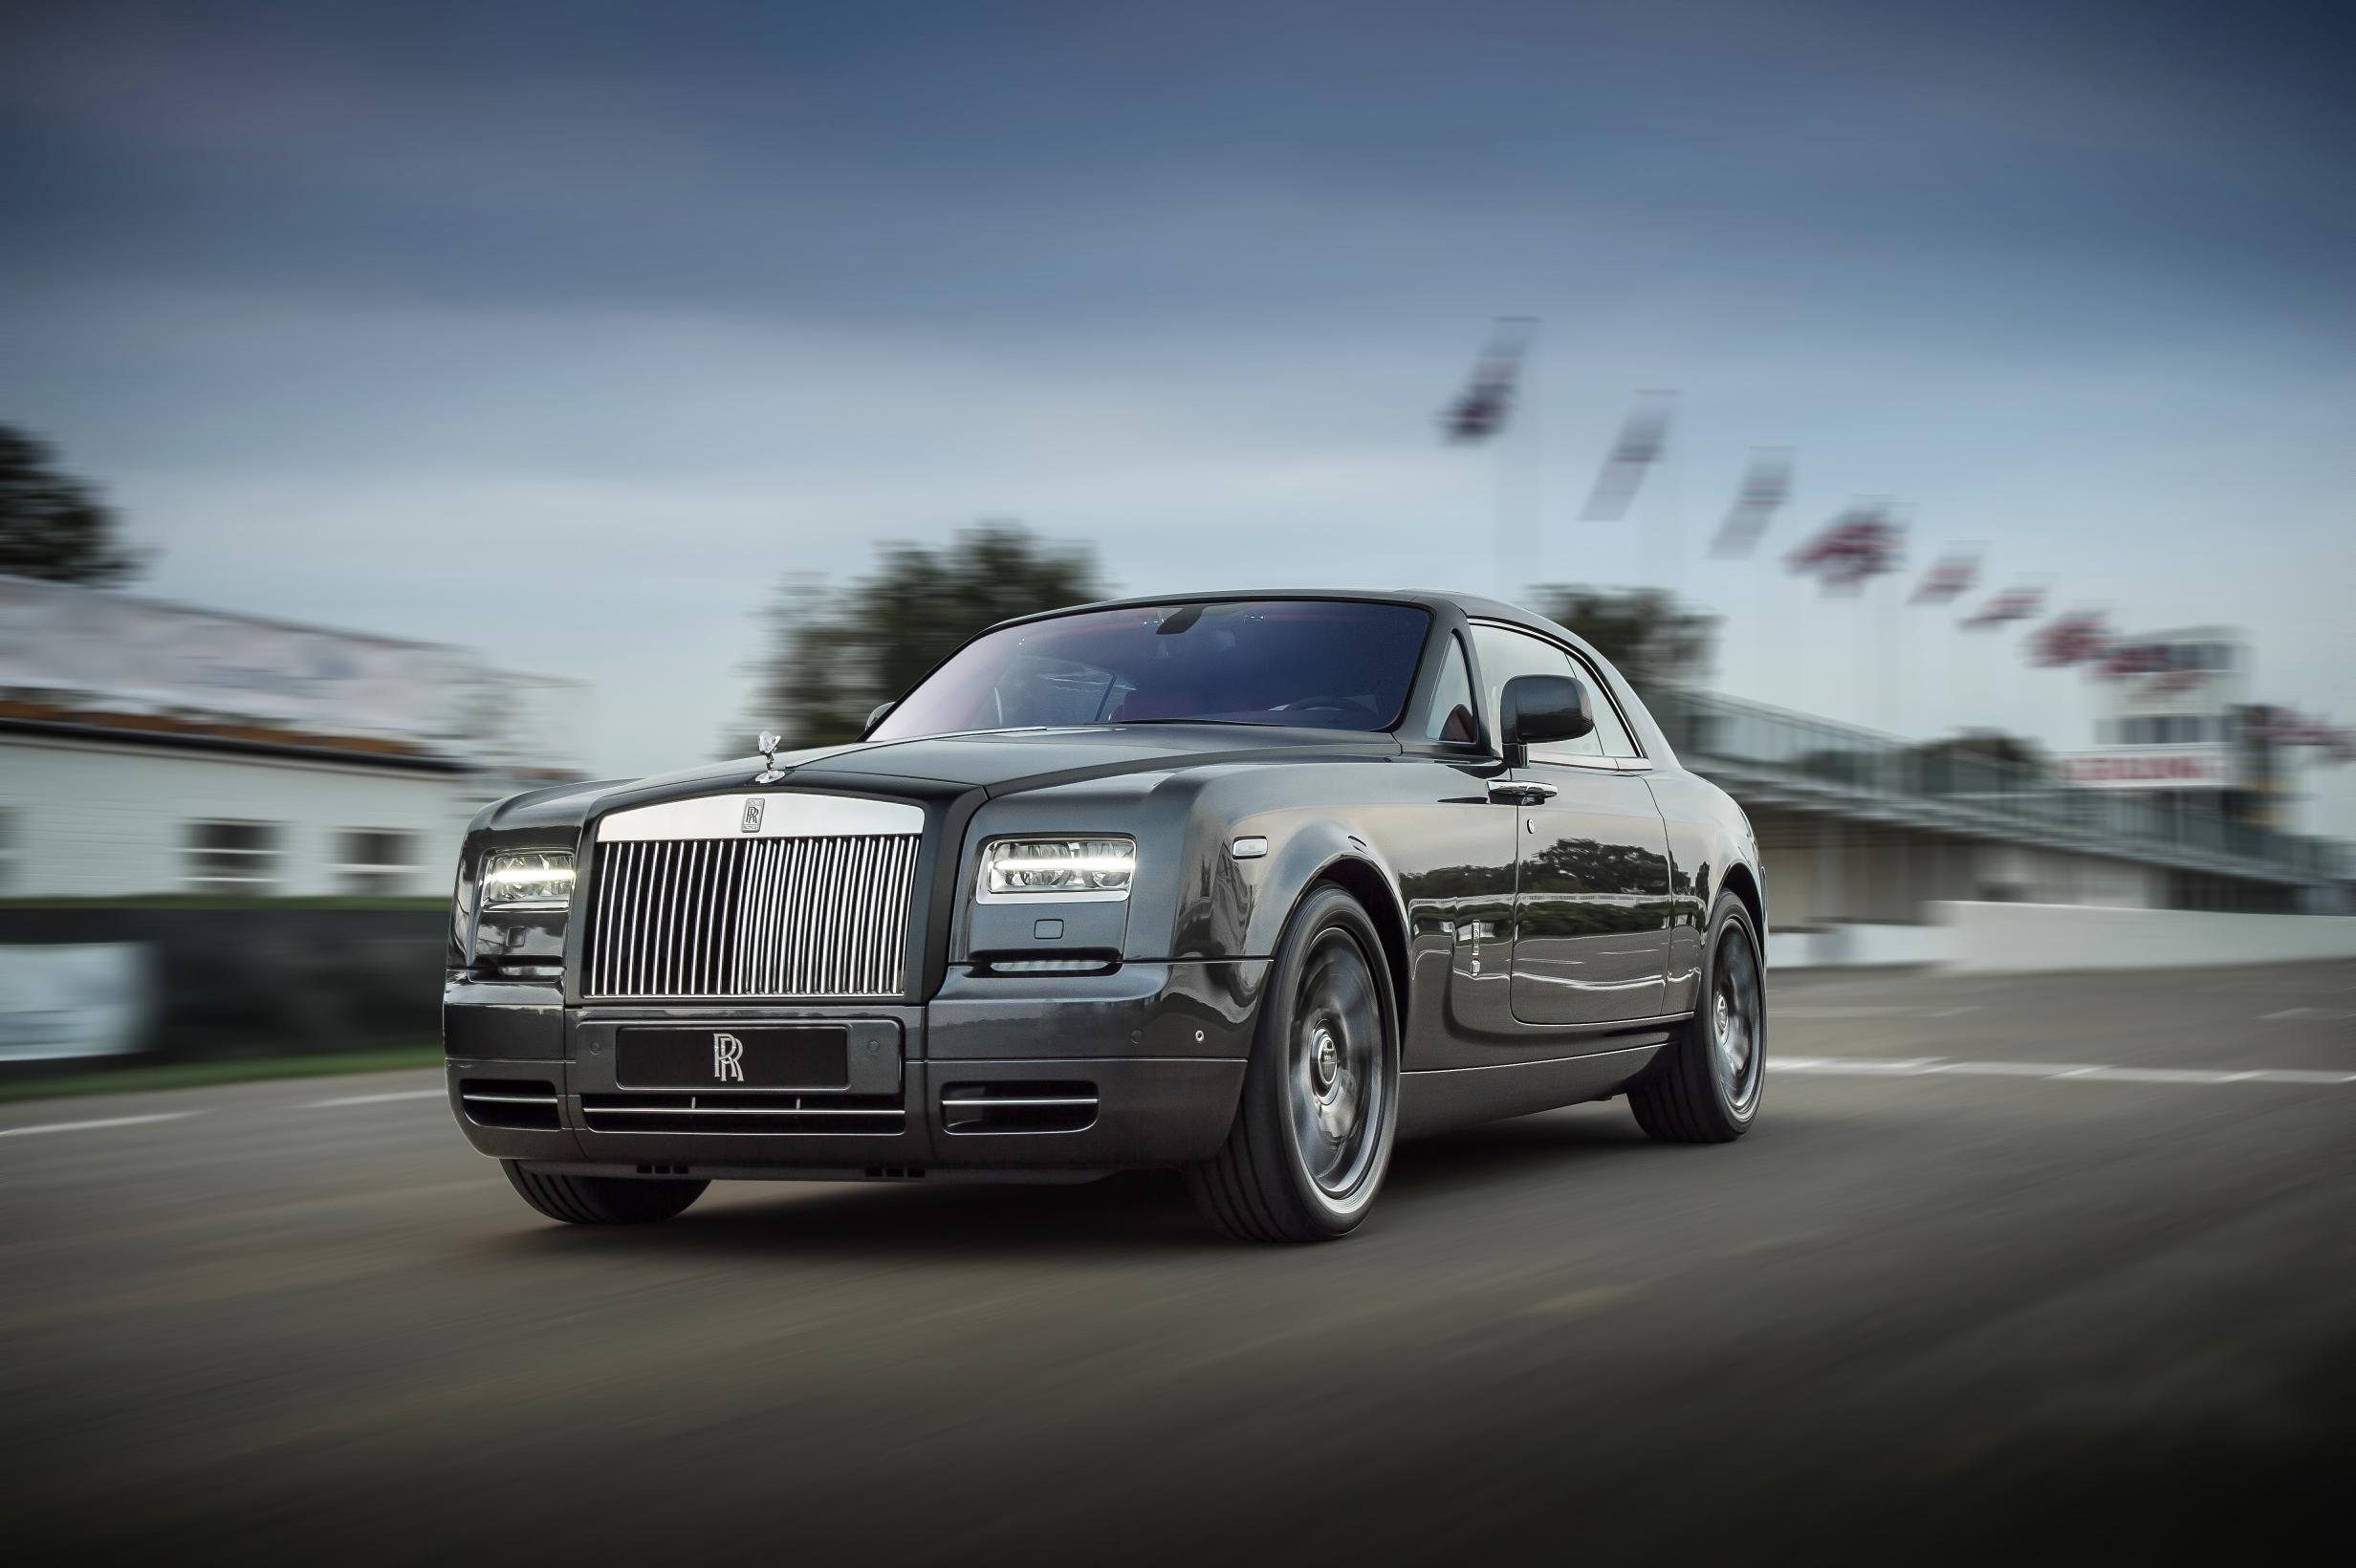 Rolls-Royce Phantom Bespoke Chicane Coupe